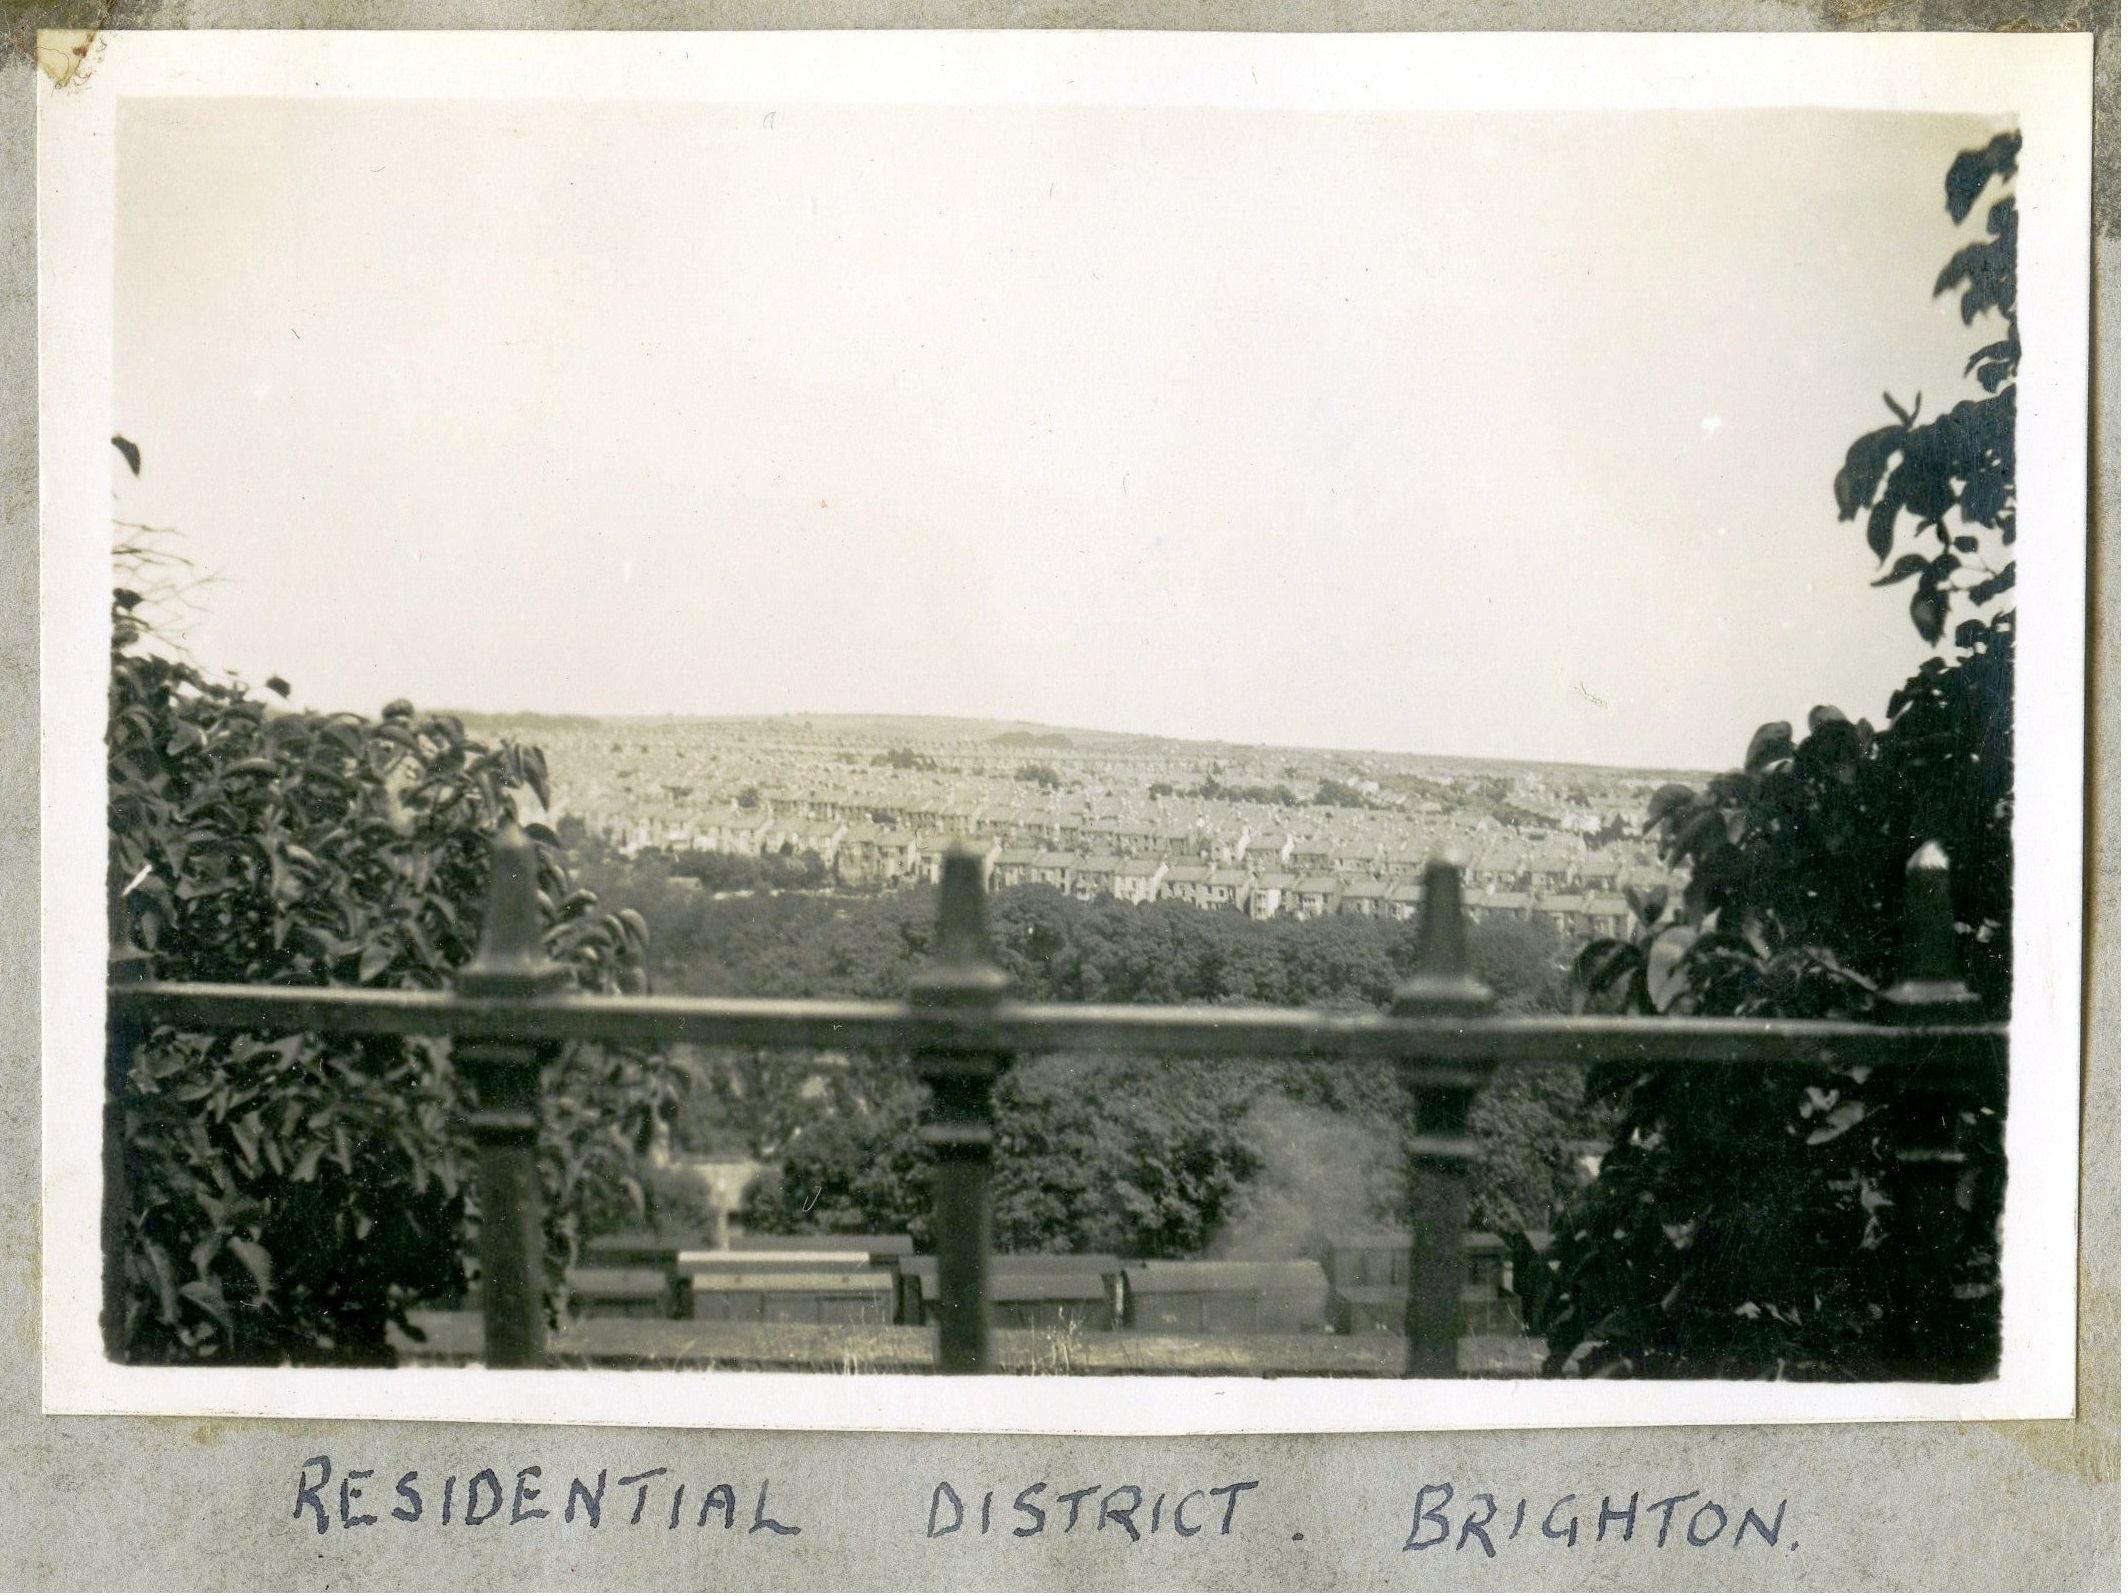 Residential District Brighton